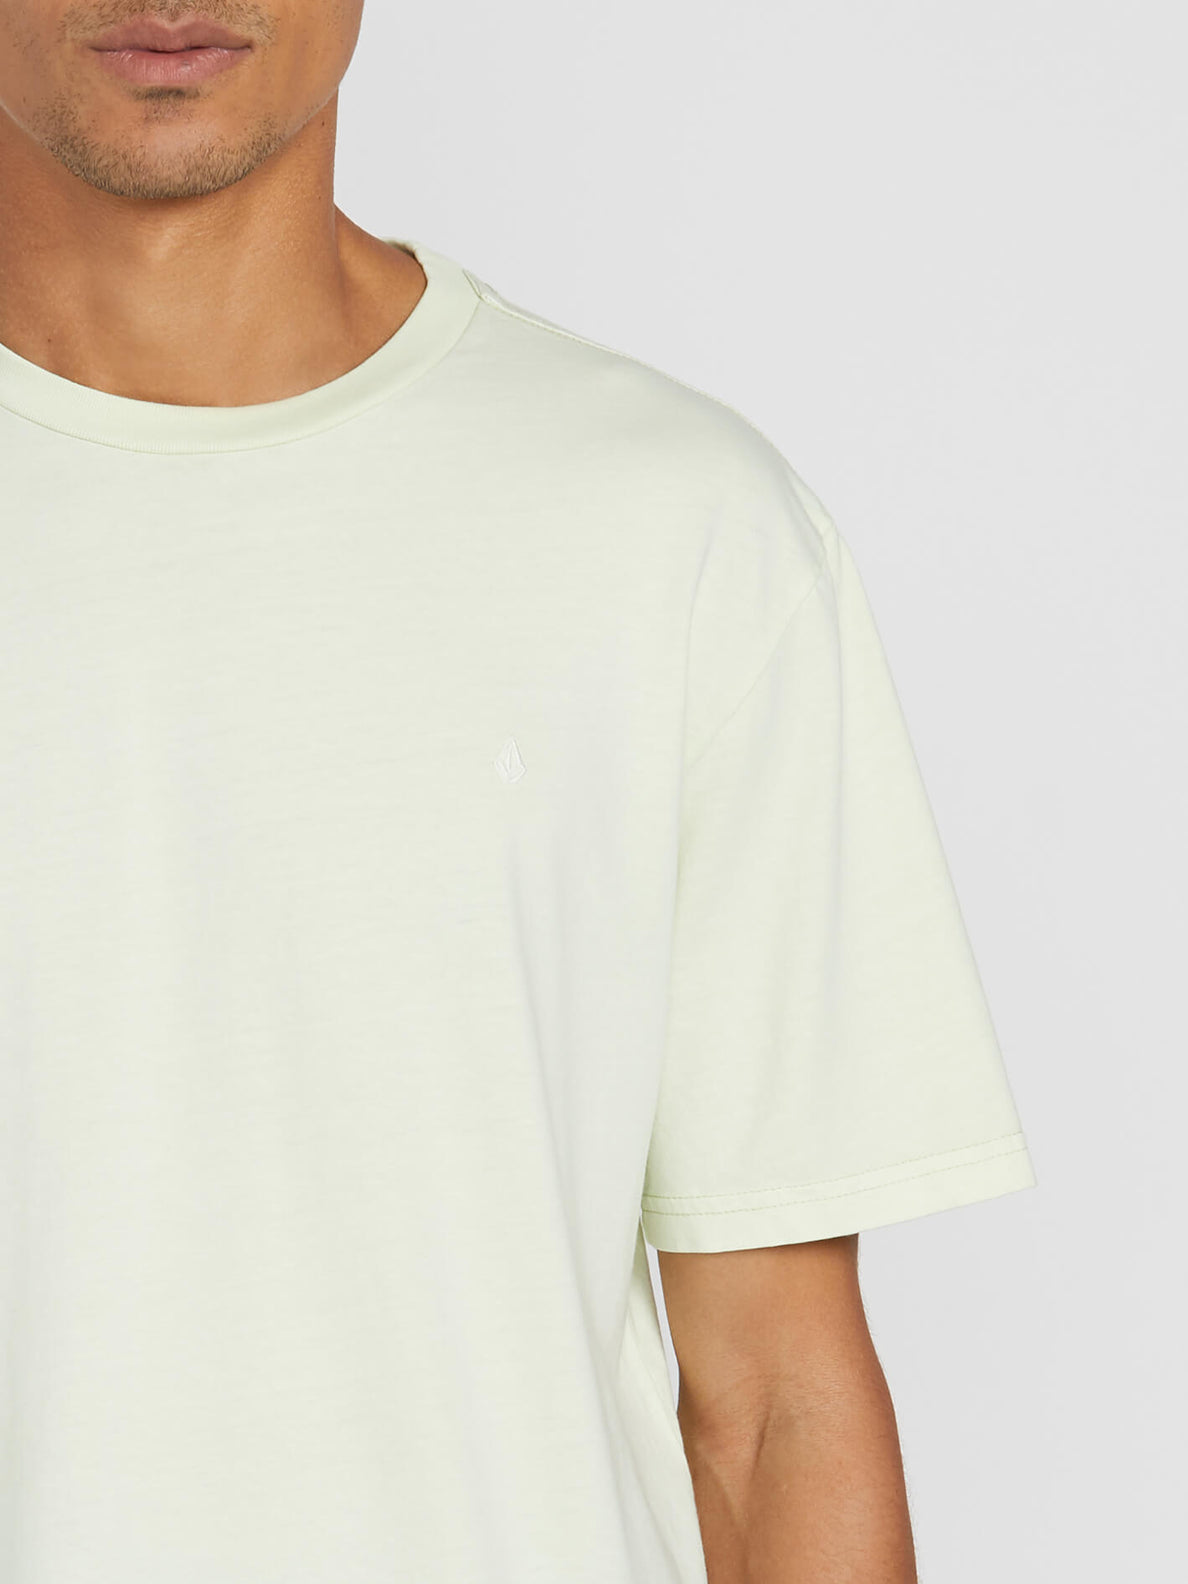 Solid Stone Short Sleeve Emblem Tee - Key Lime (A5211906_KEY) [1]